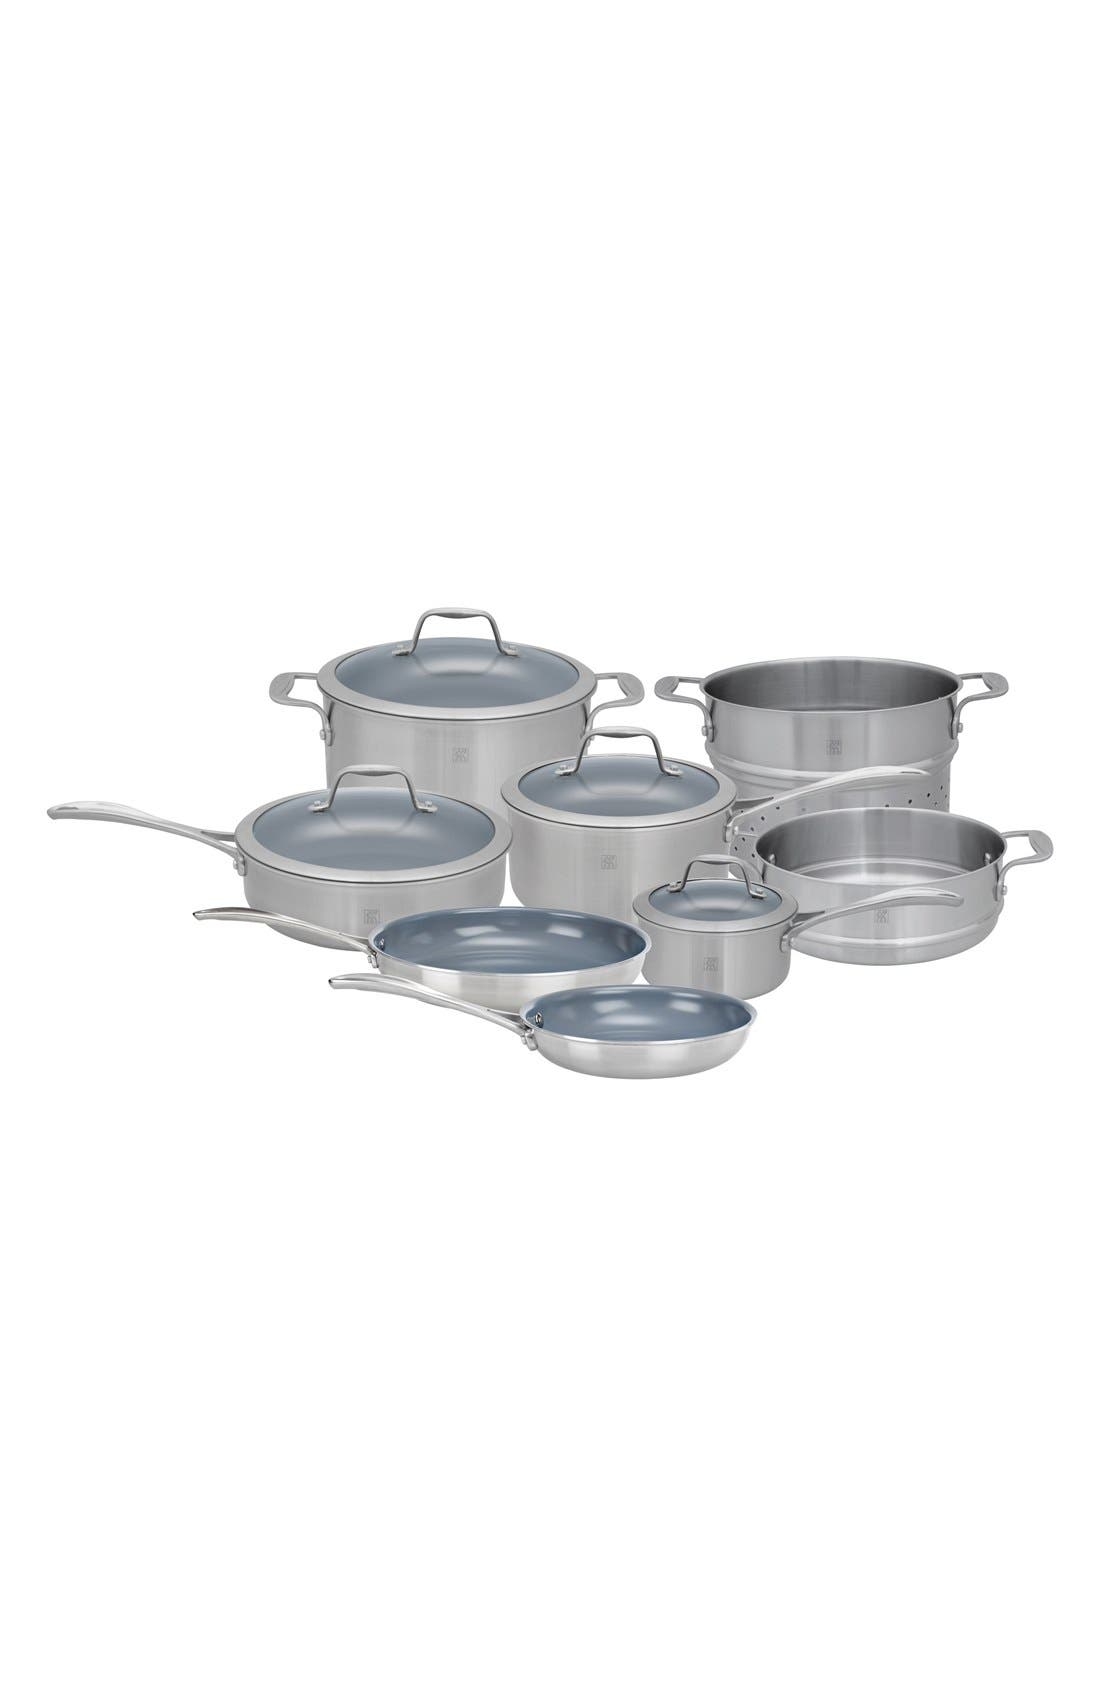 Stainless Steel Ceramic Nonstick Cookware Set,                             Main thumbnail 1, color,                             040